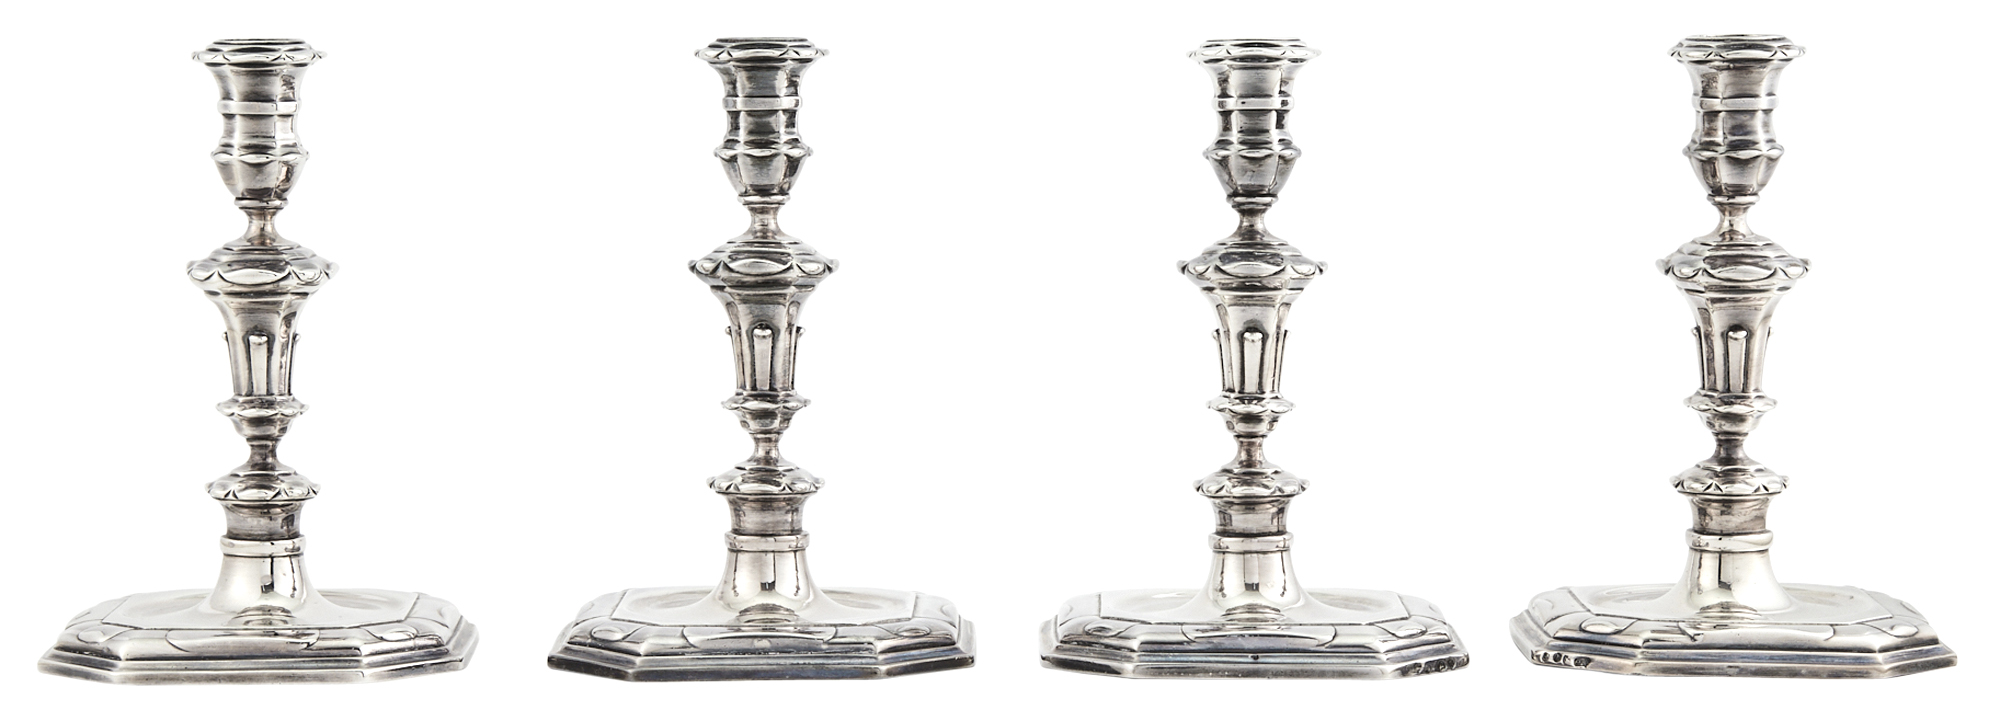 Lot image - Set of Four Dutch Silver Candlesticks